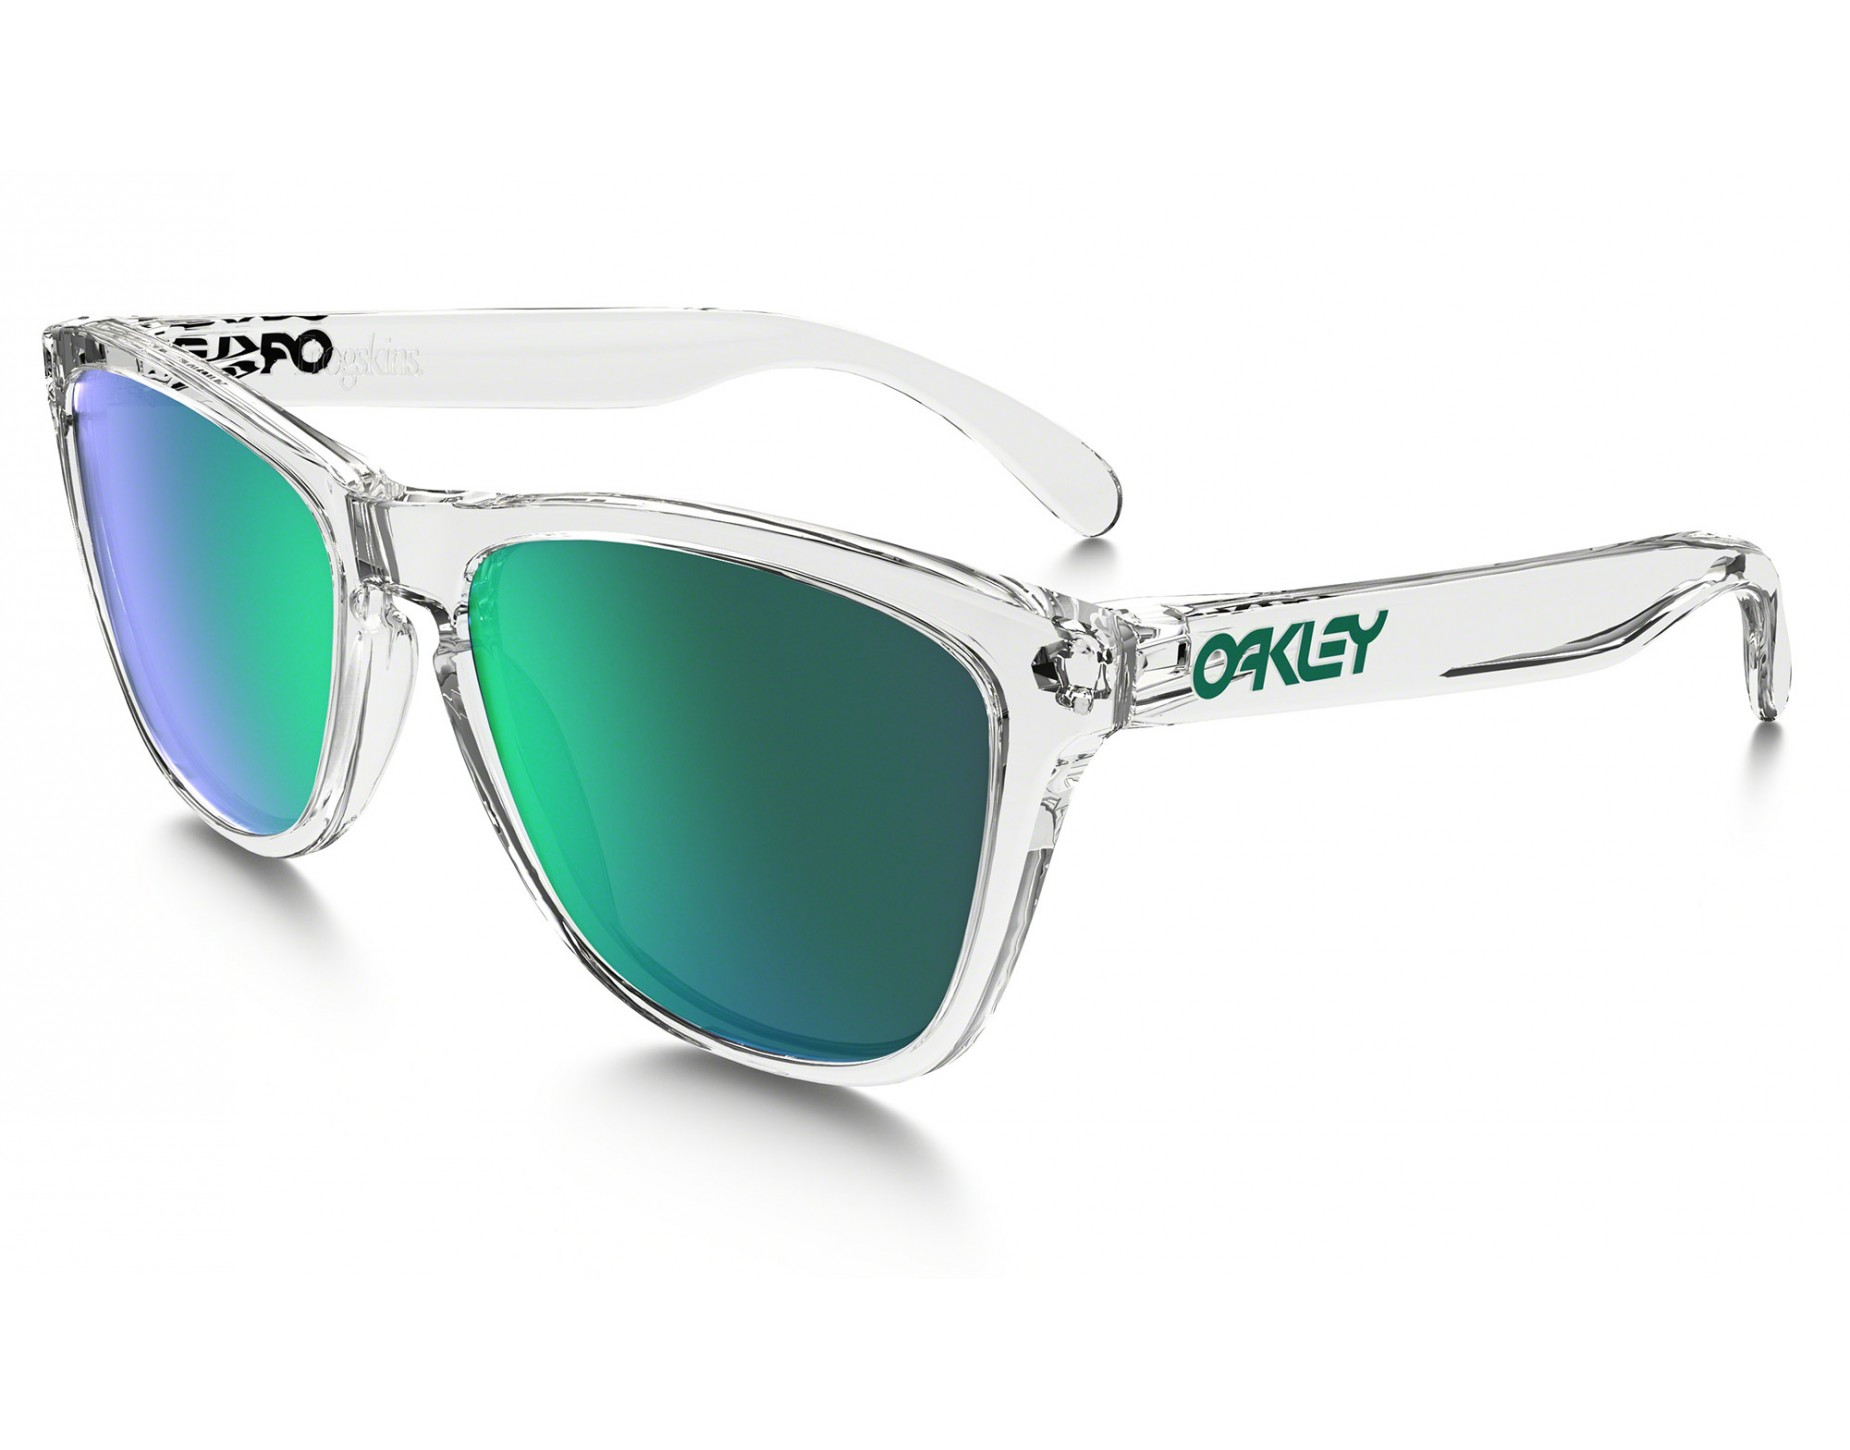 7ad7a4a0217 Oakley Clear Cycling Glasses « Heritage Malta